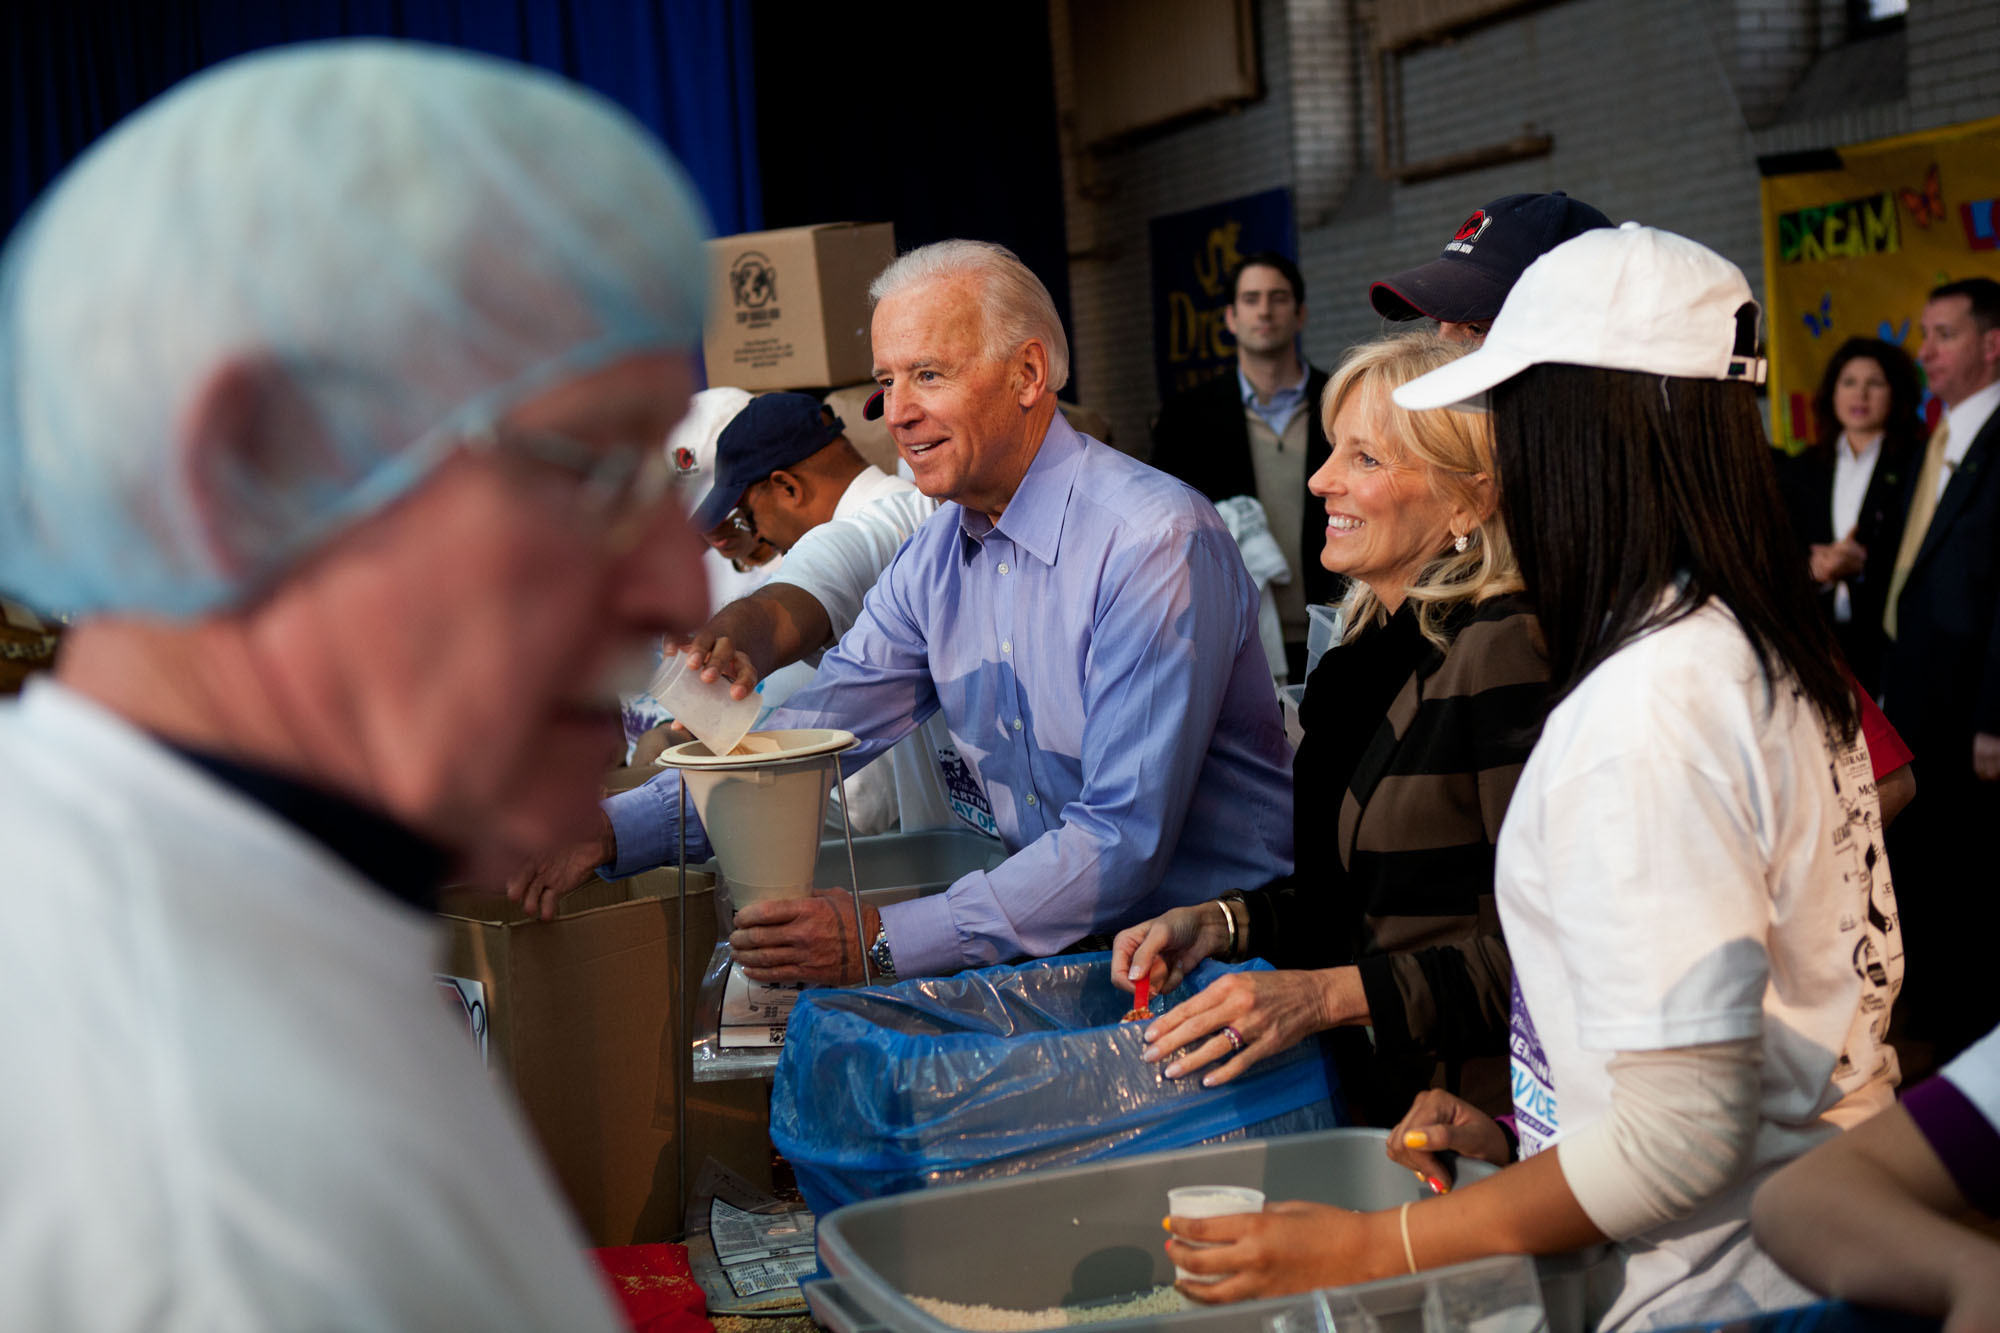 Vice President Biden and Dr. Jill Biden participate in MLK Day service event